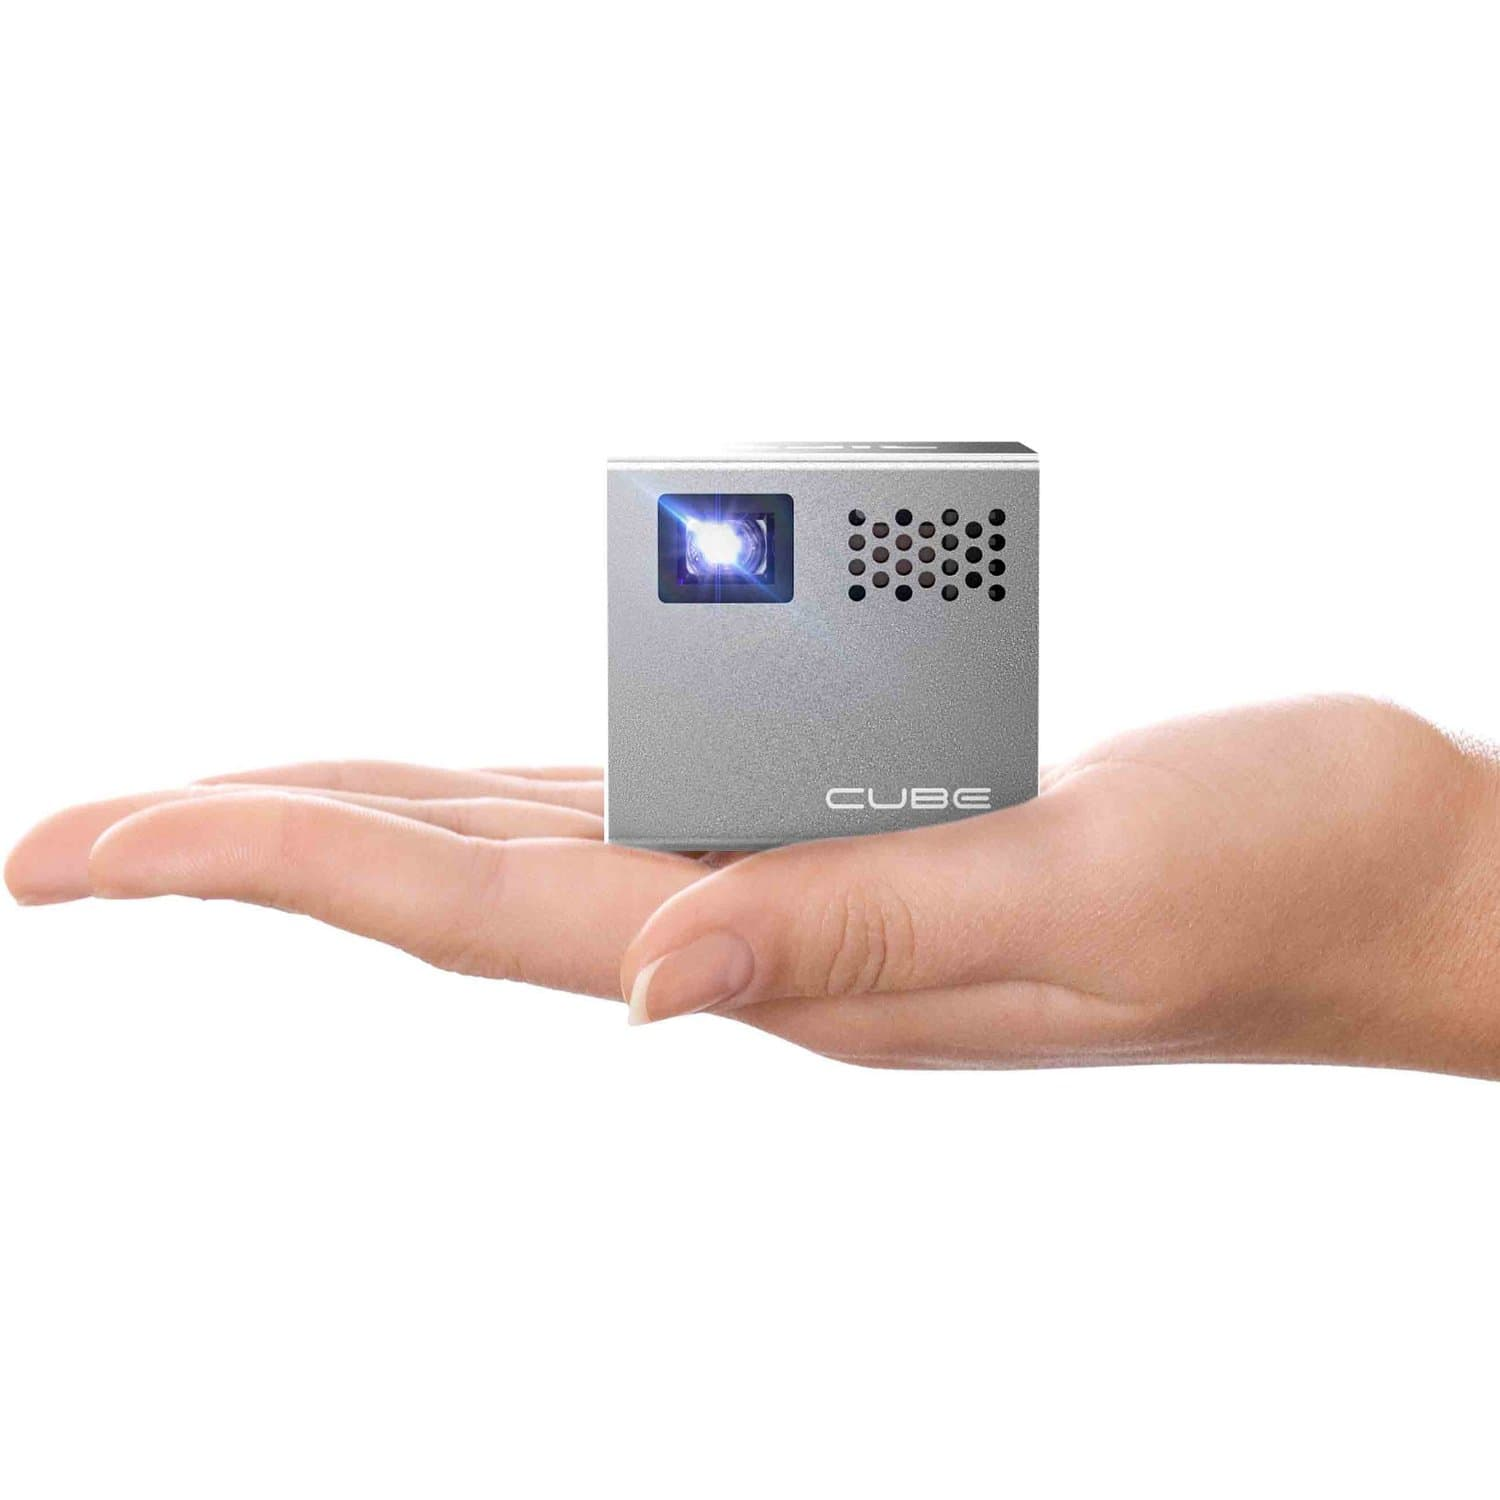 Cube_LedProjector